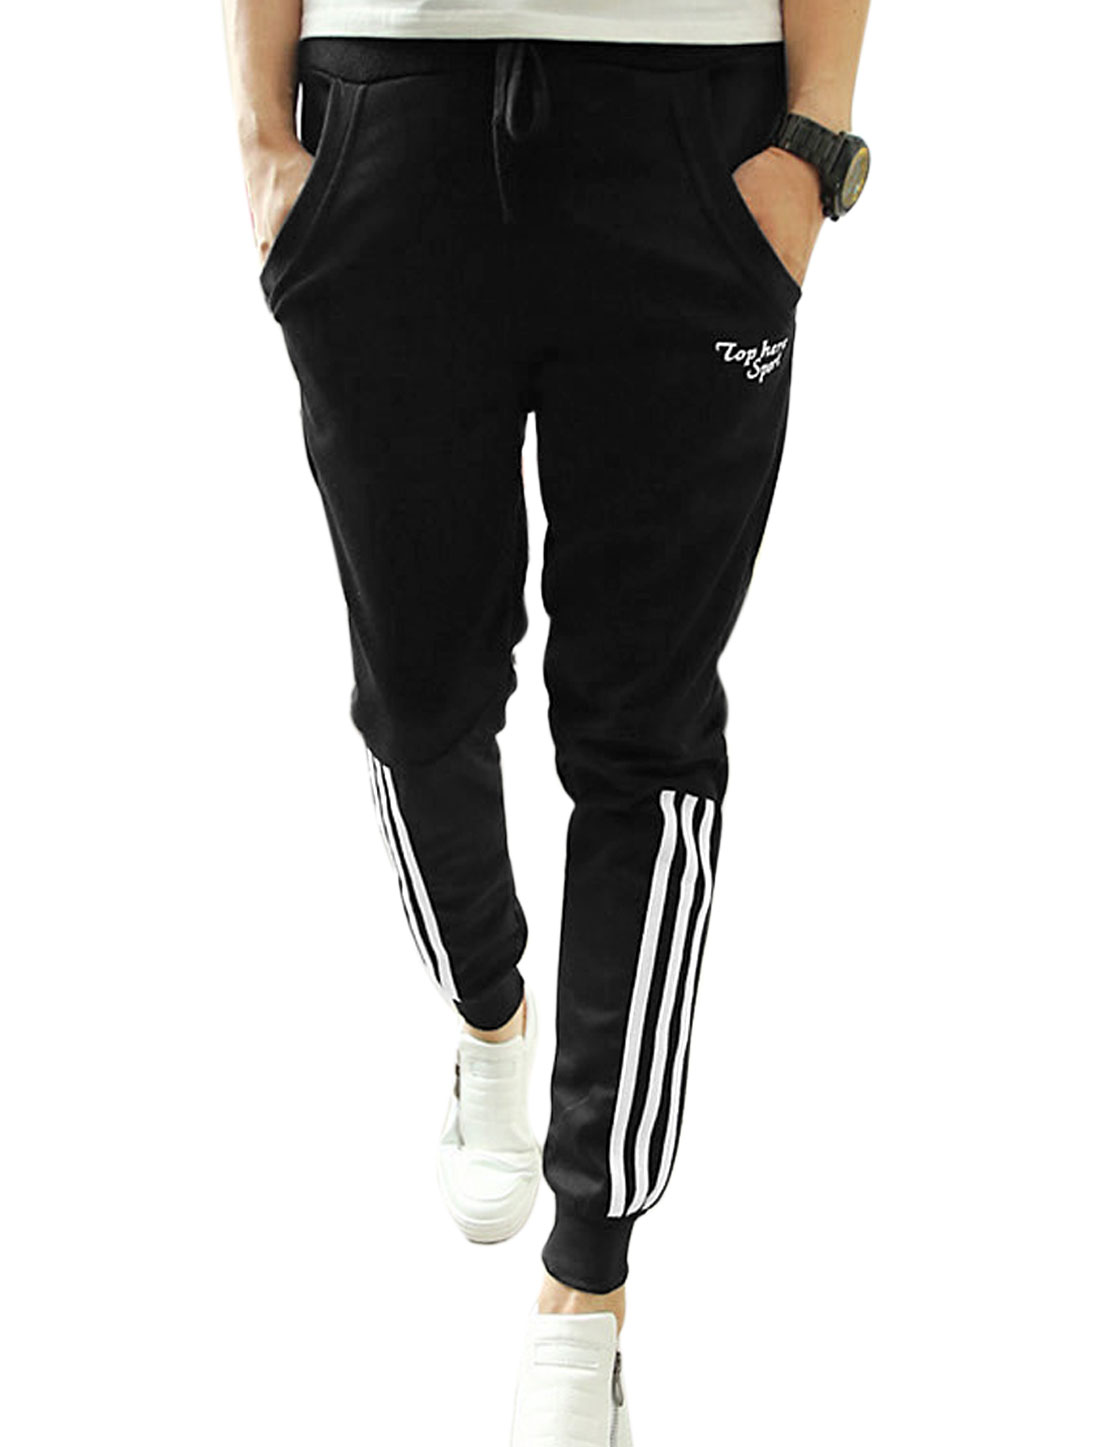 Men Drawstring Ribbed Cuffs Stripes Line Decor Casual Sport Pants Black W30